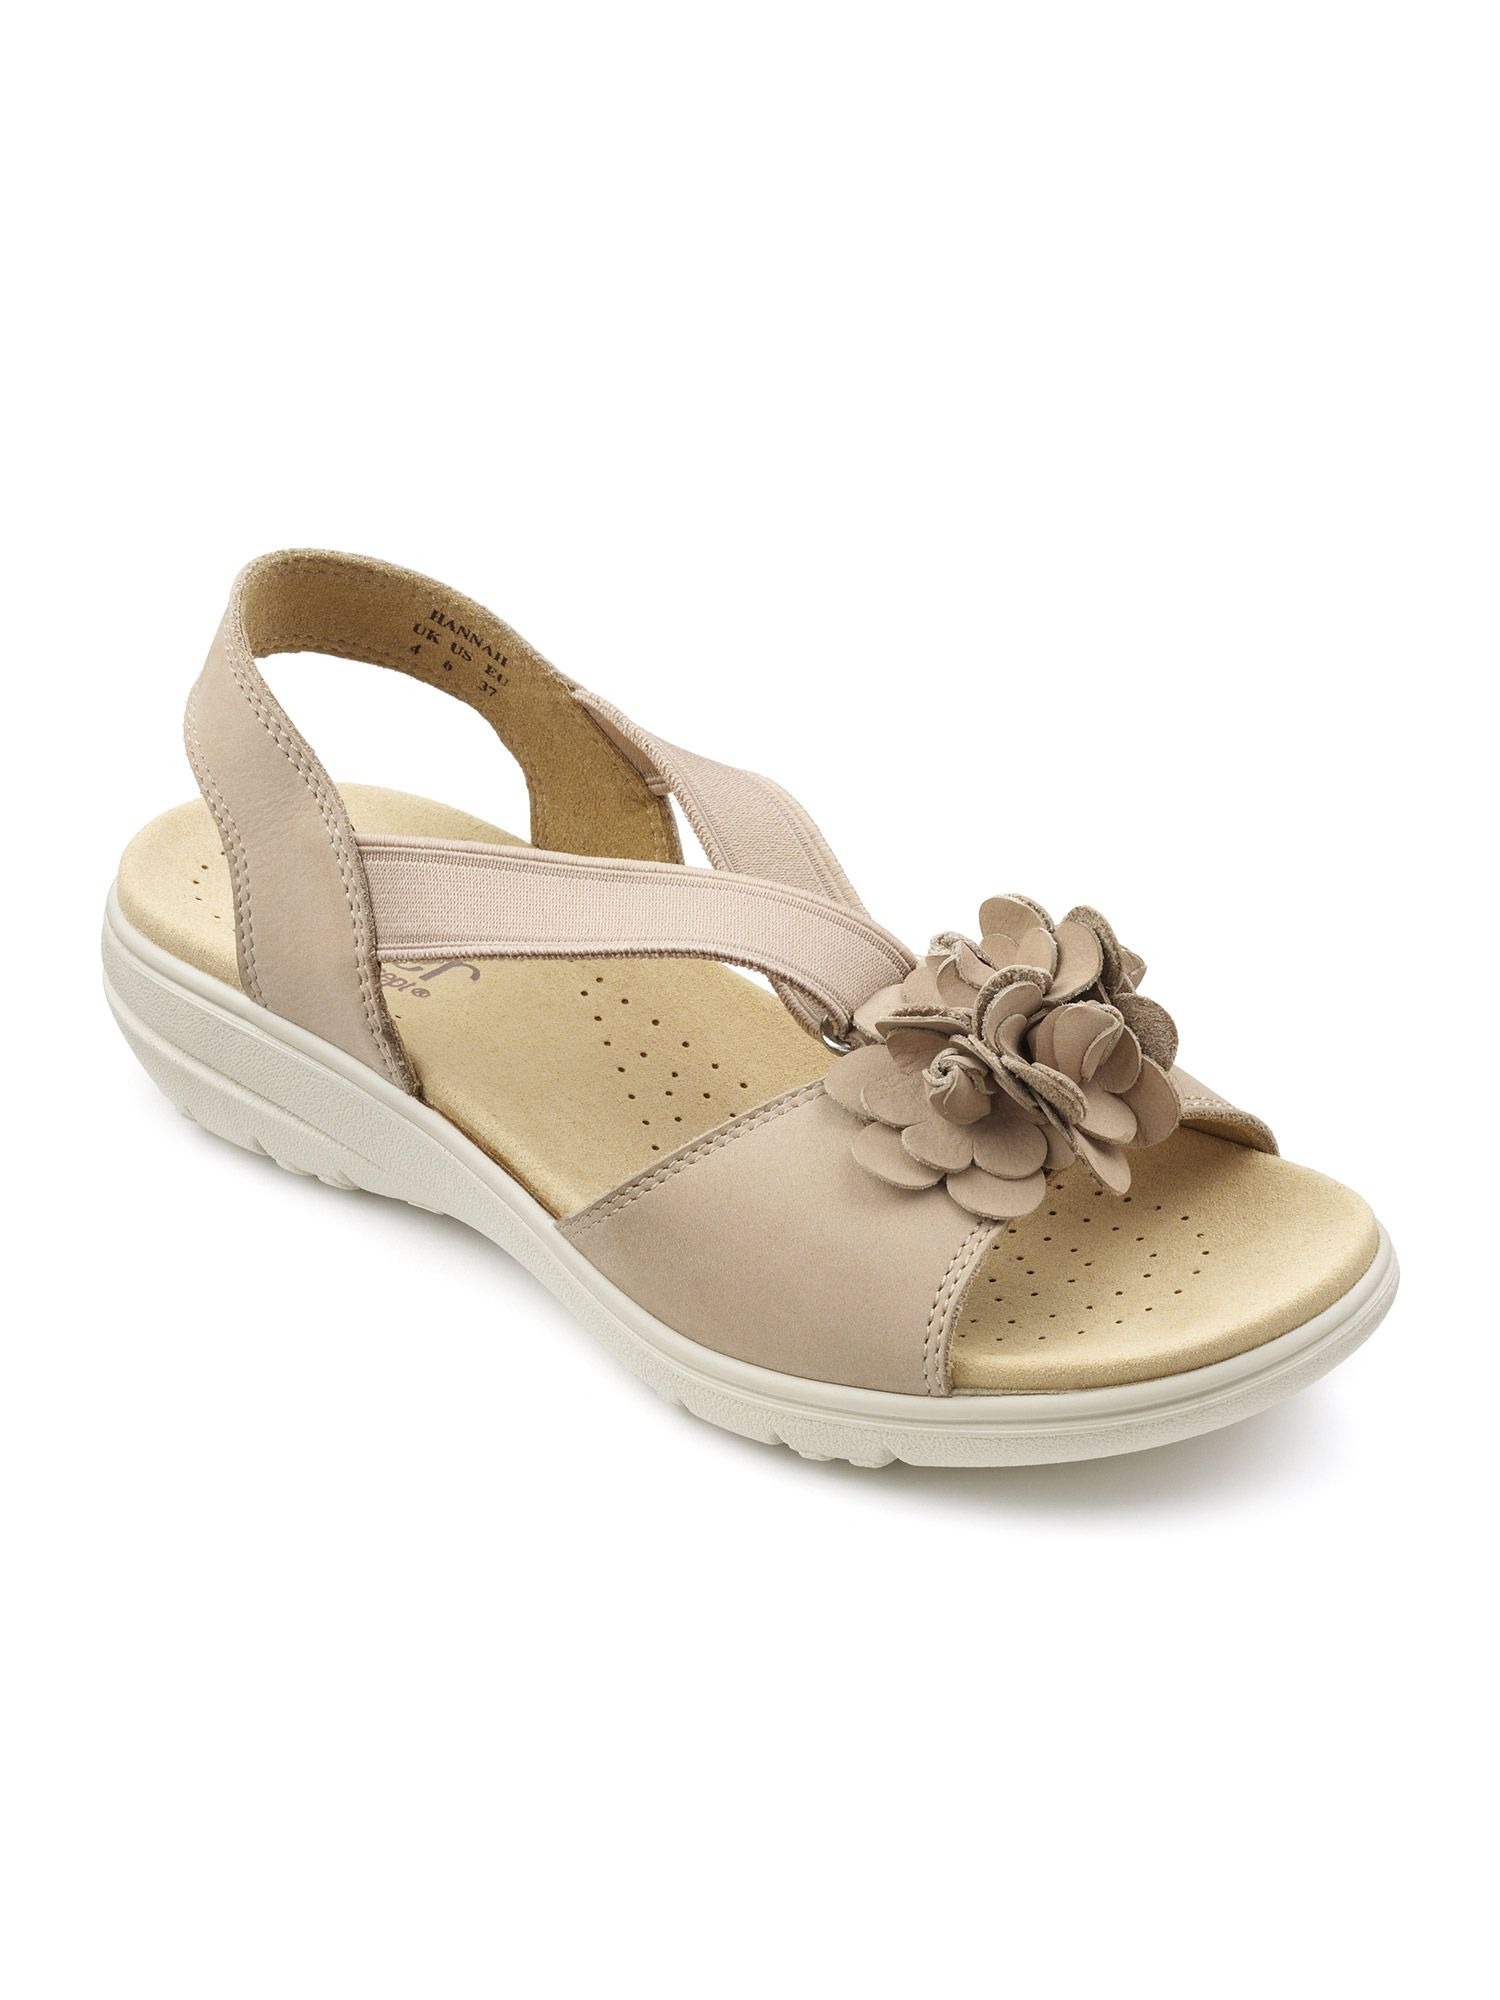 Hotter Hannah Ladies Sandal, Light Brown